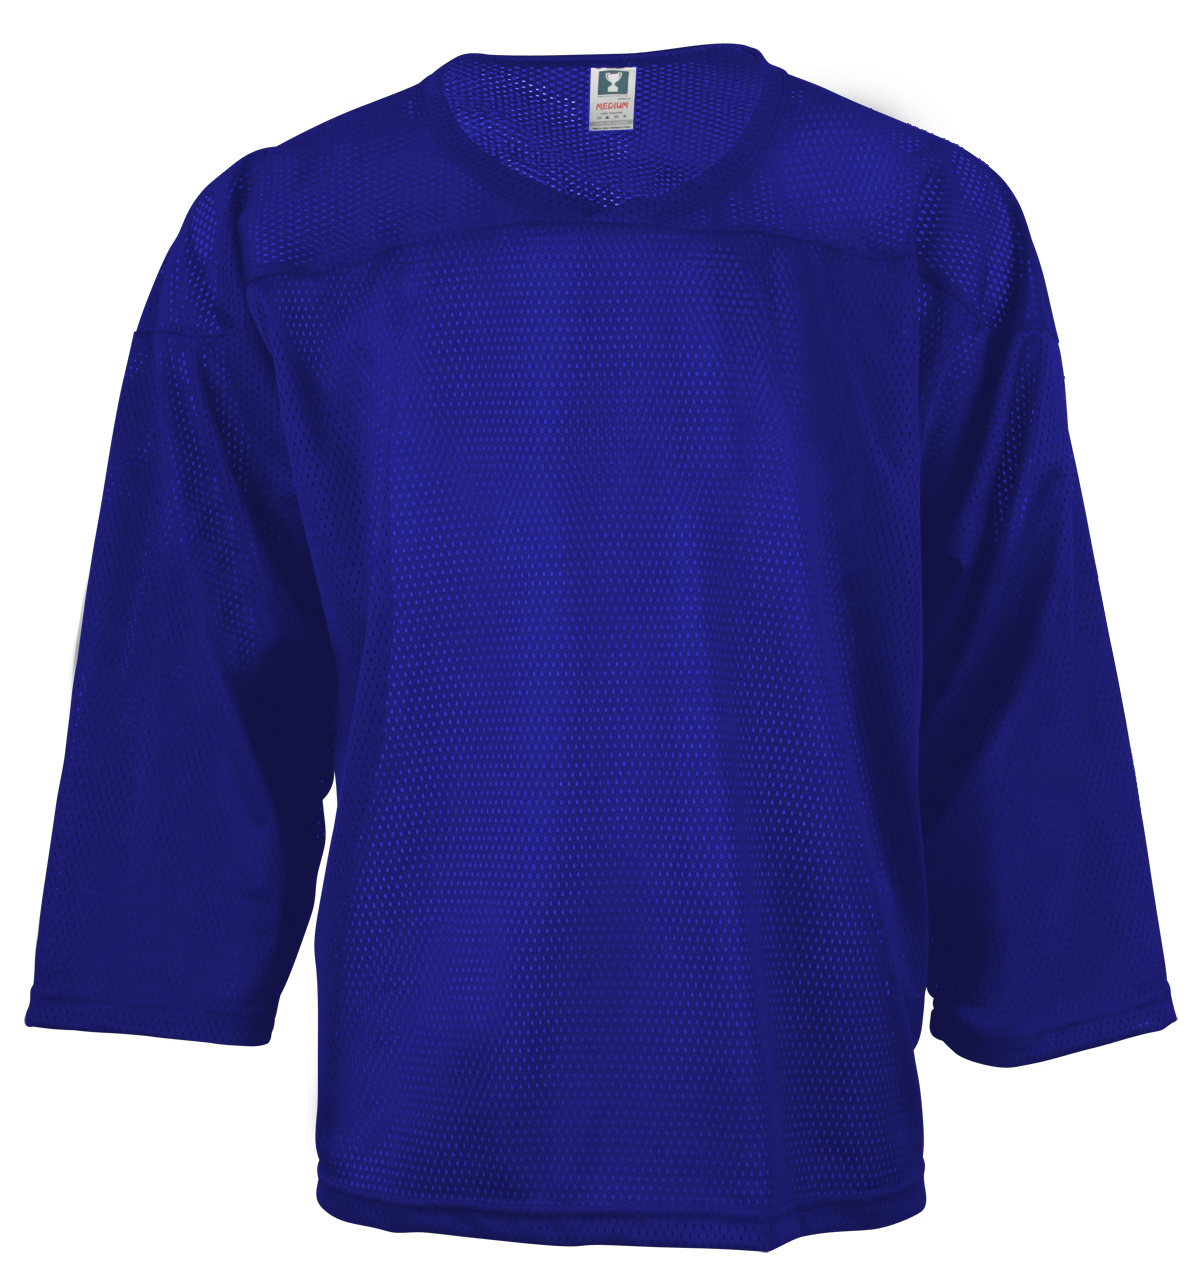 Picture of N3 SPORT Mesh Football Jersey